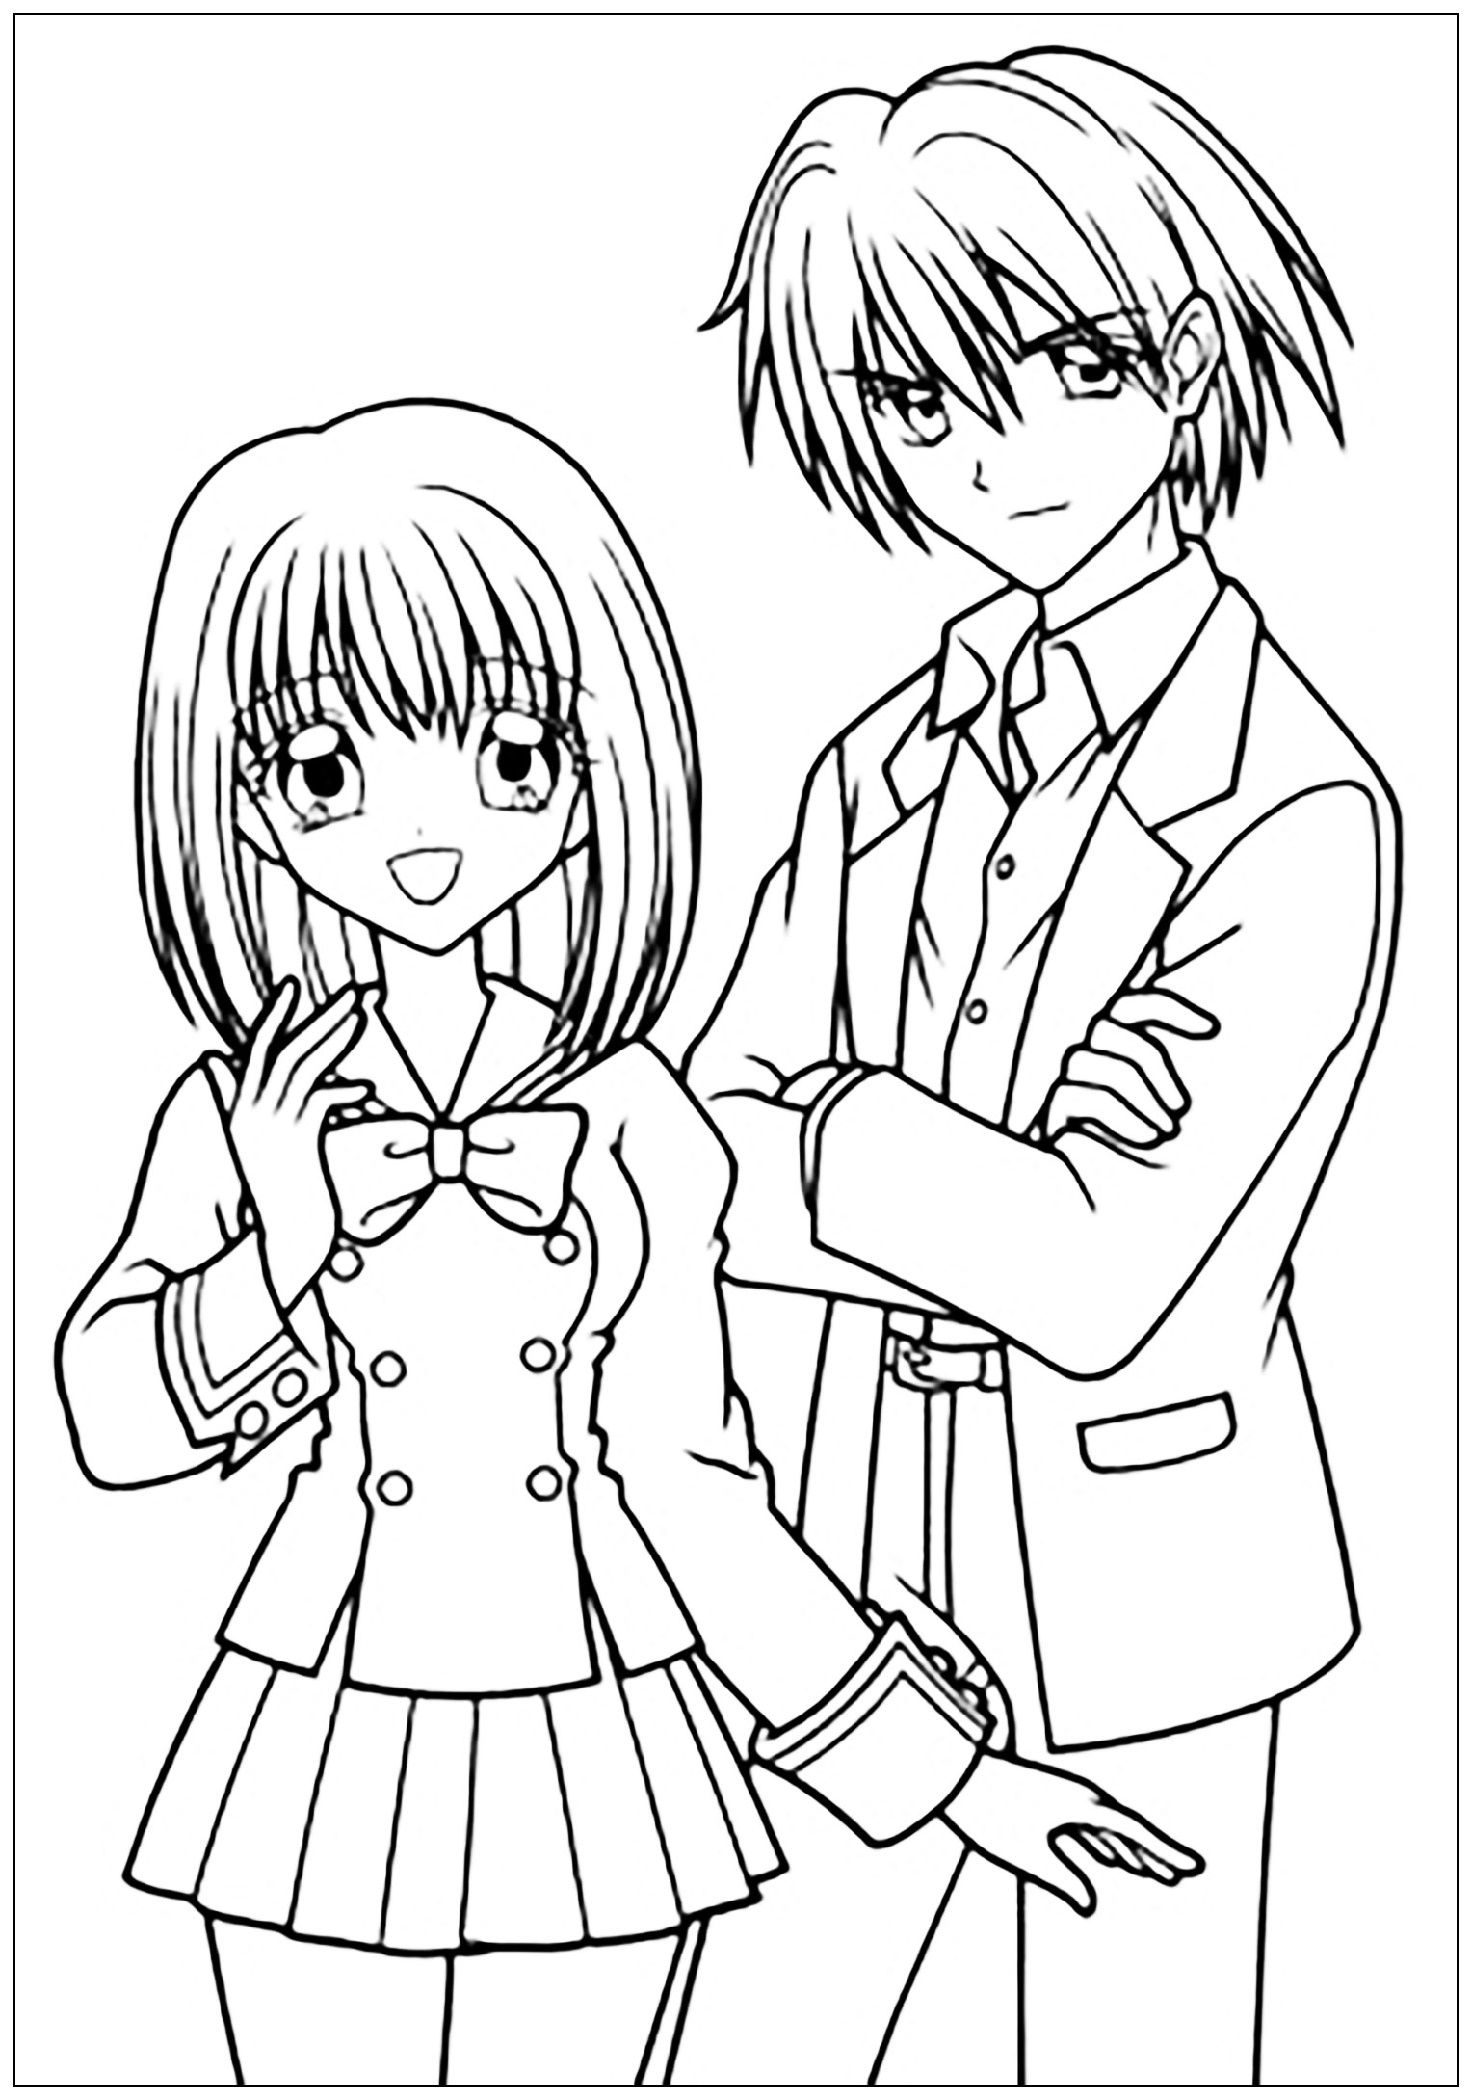 Anime Couple Coloring Pages Coloring Pages For Boys Boy And